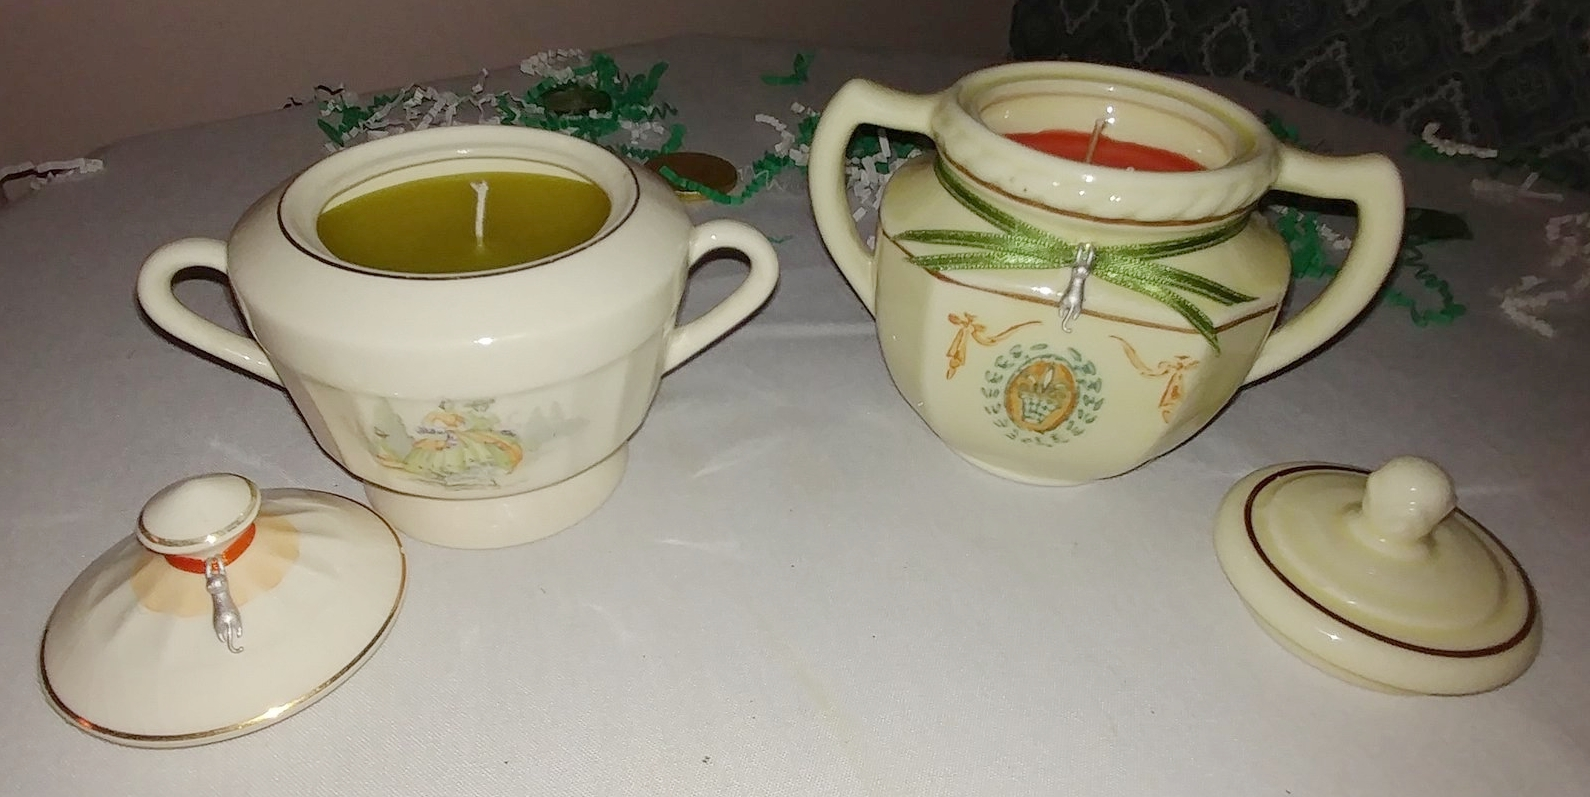 Scented Sugar Bowl Candles $20/ea